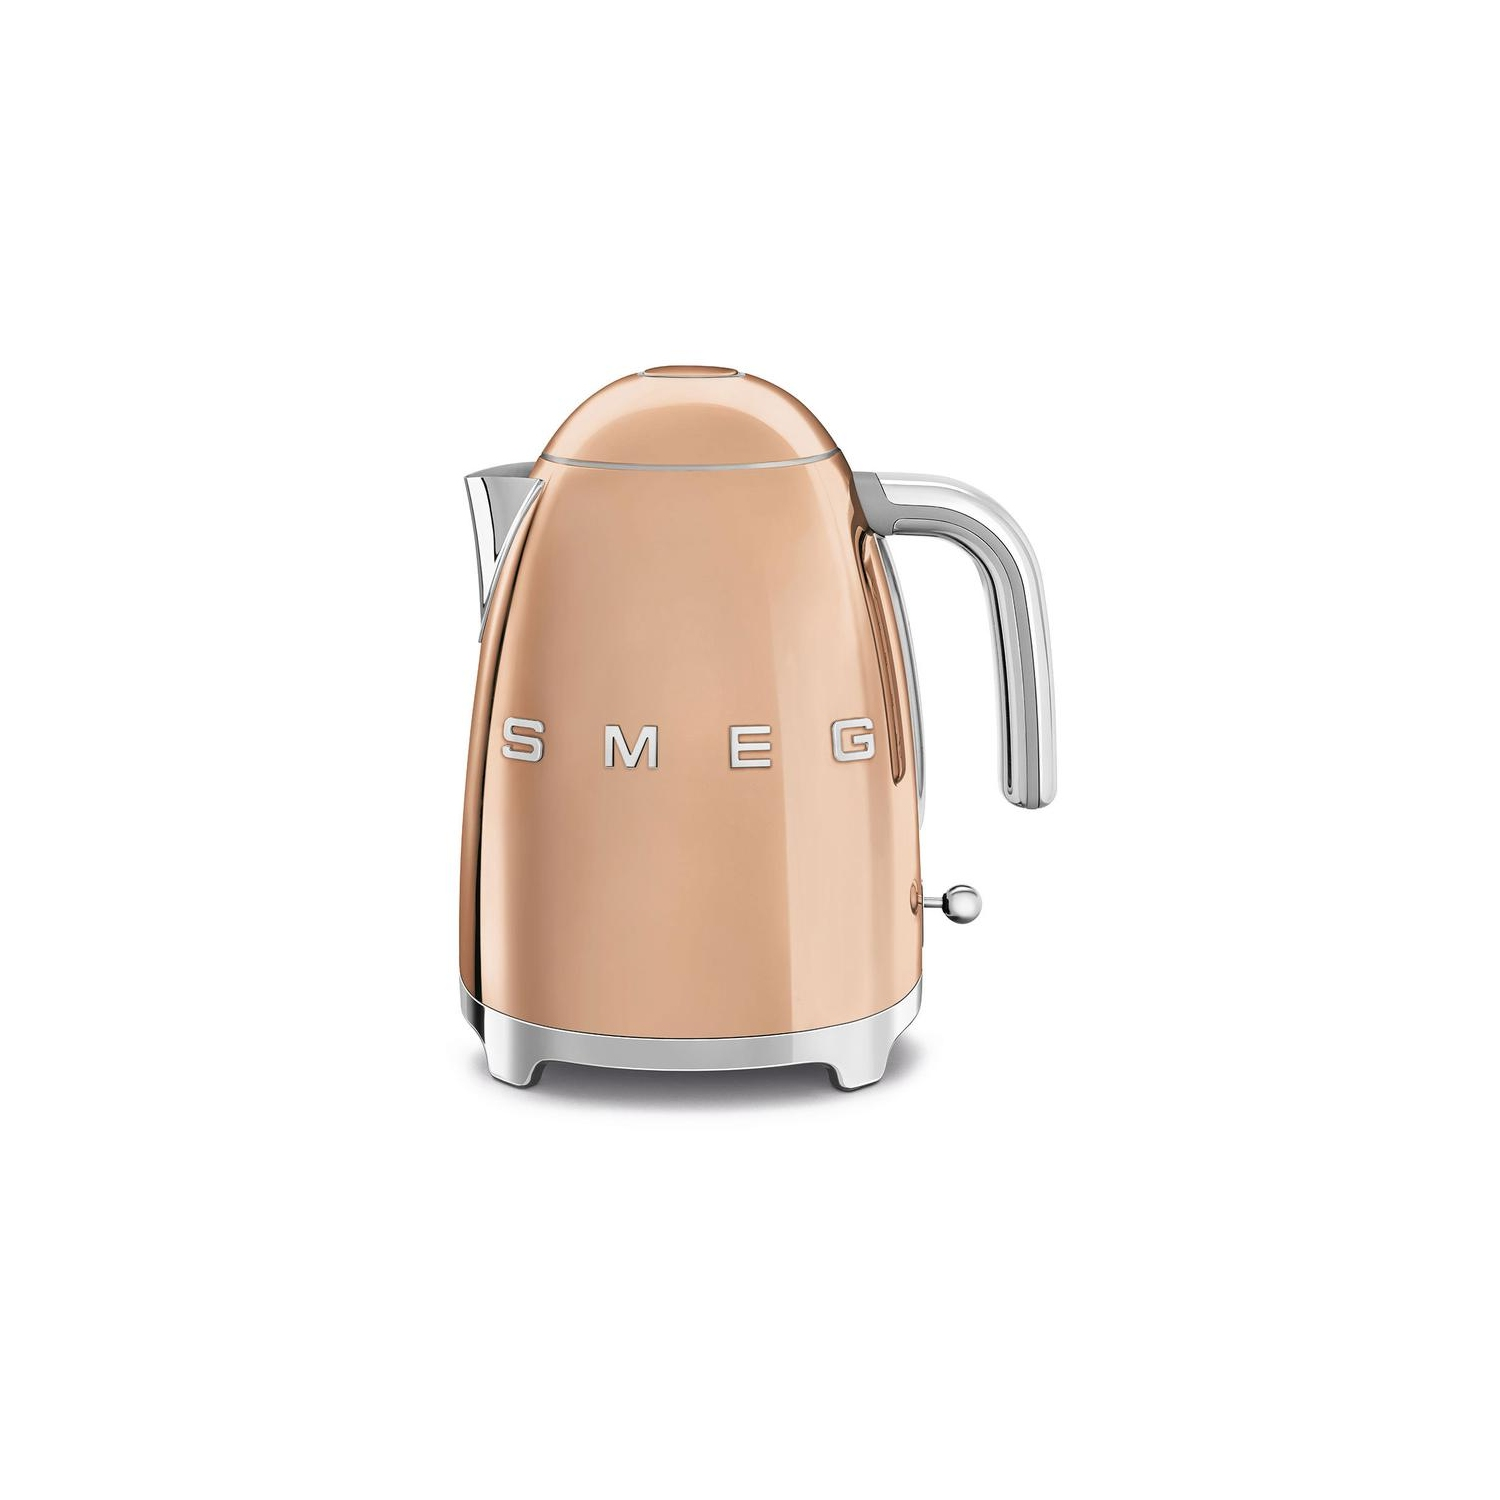 Special Edition Rose Gold Kettle - 0